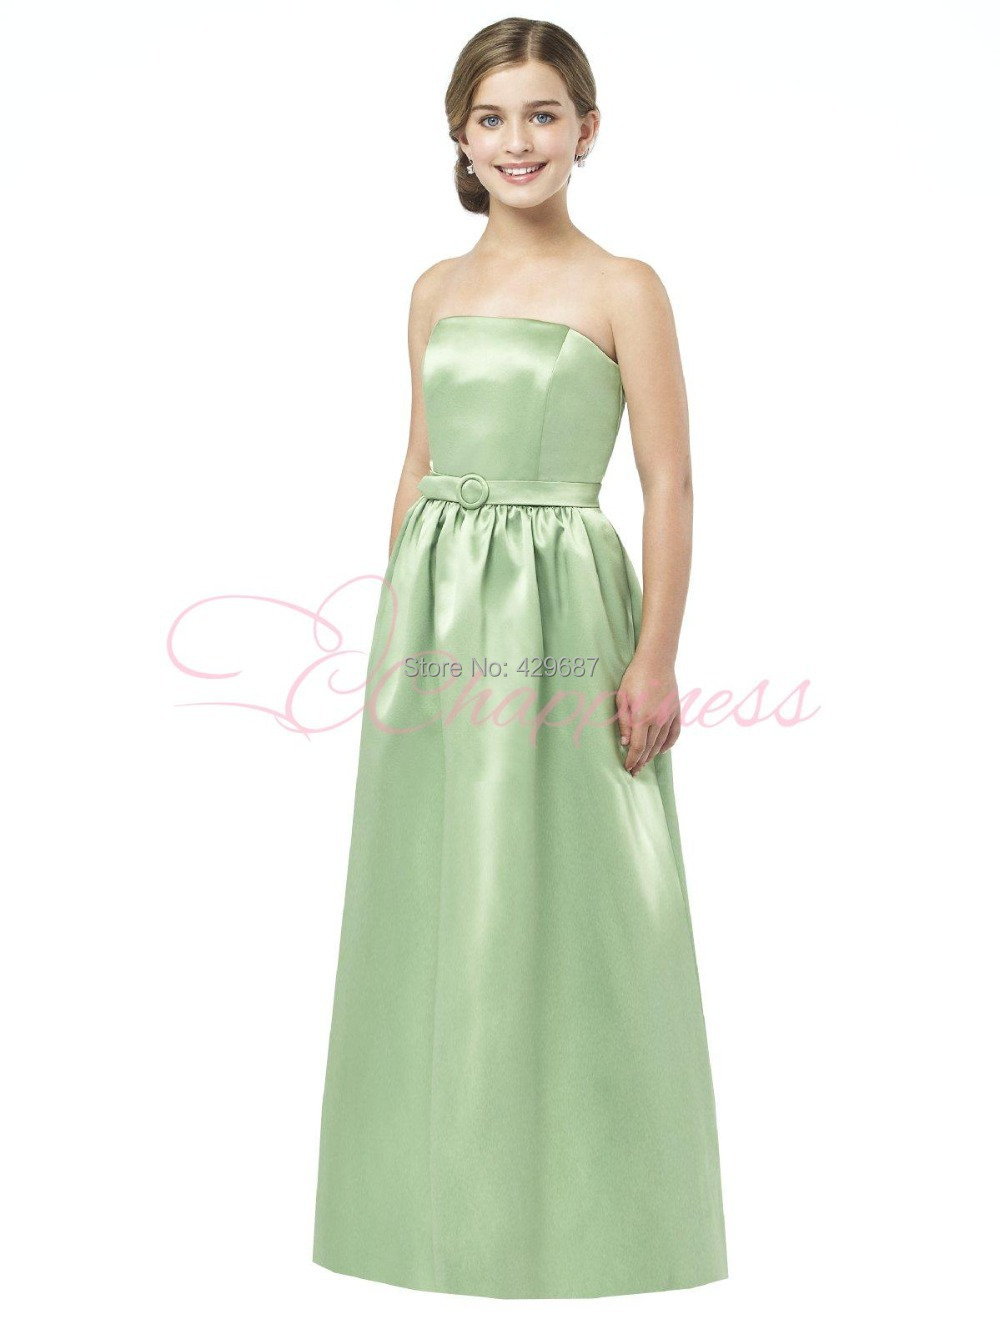 Aliexpress buy modest strapless satin mint green dresses aliexpress buy modest strapless satin mint green dresses maid of honor long floor length junior bridesmaid dresses um1700 from reliable dress with a ombrellifo Gallery